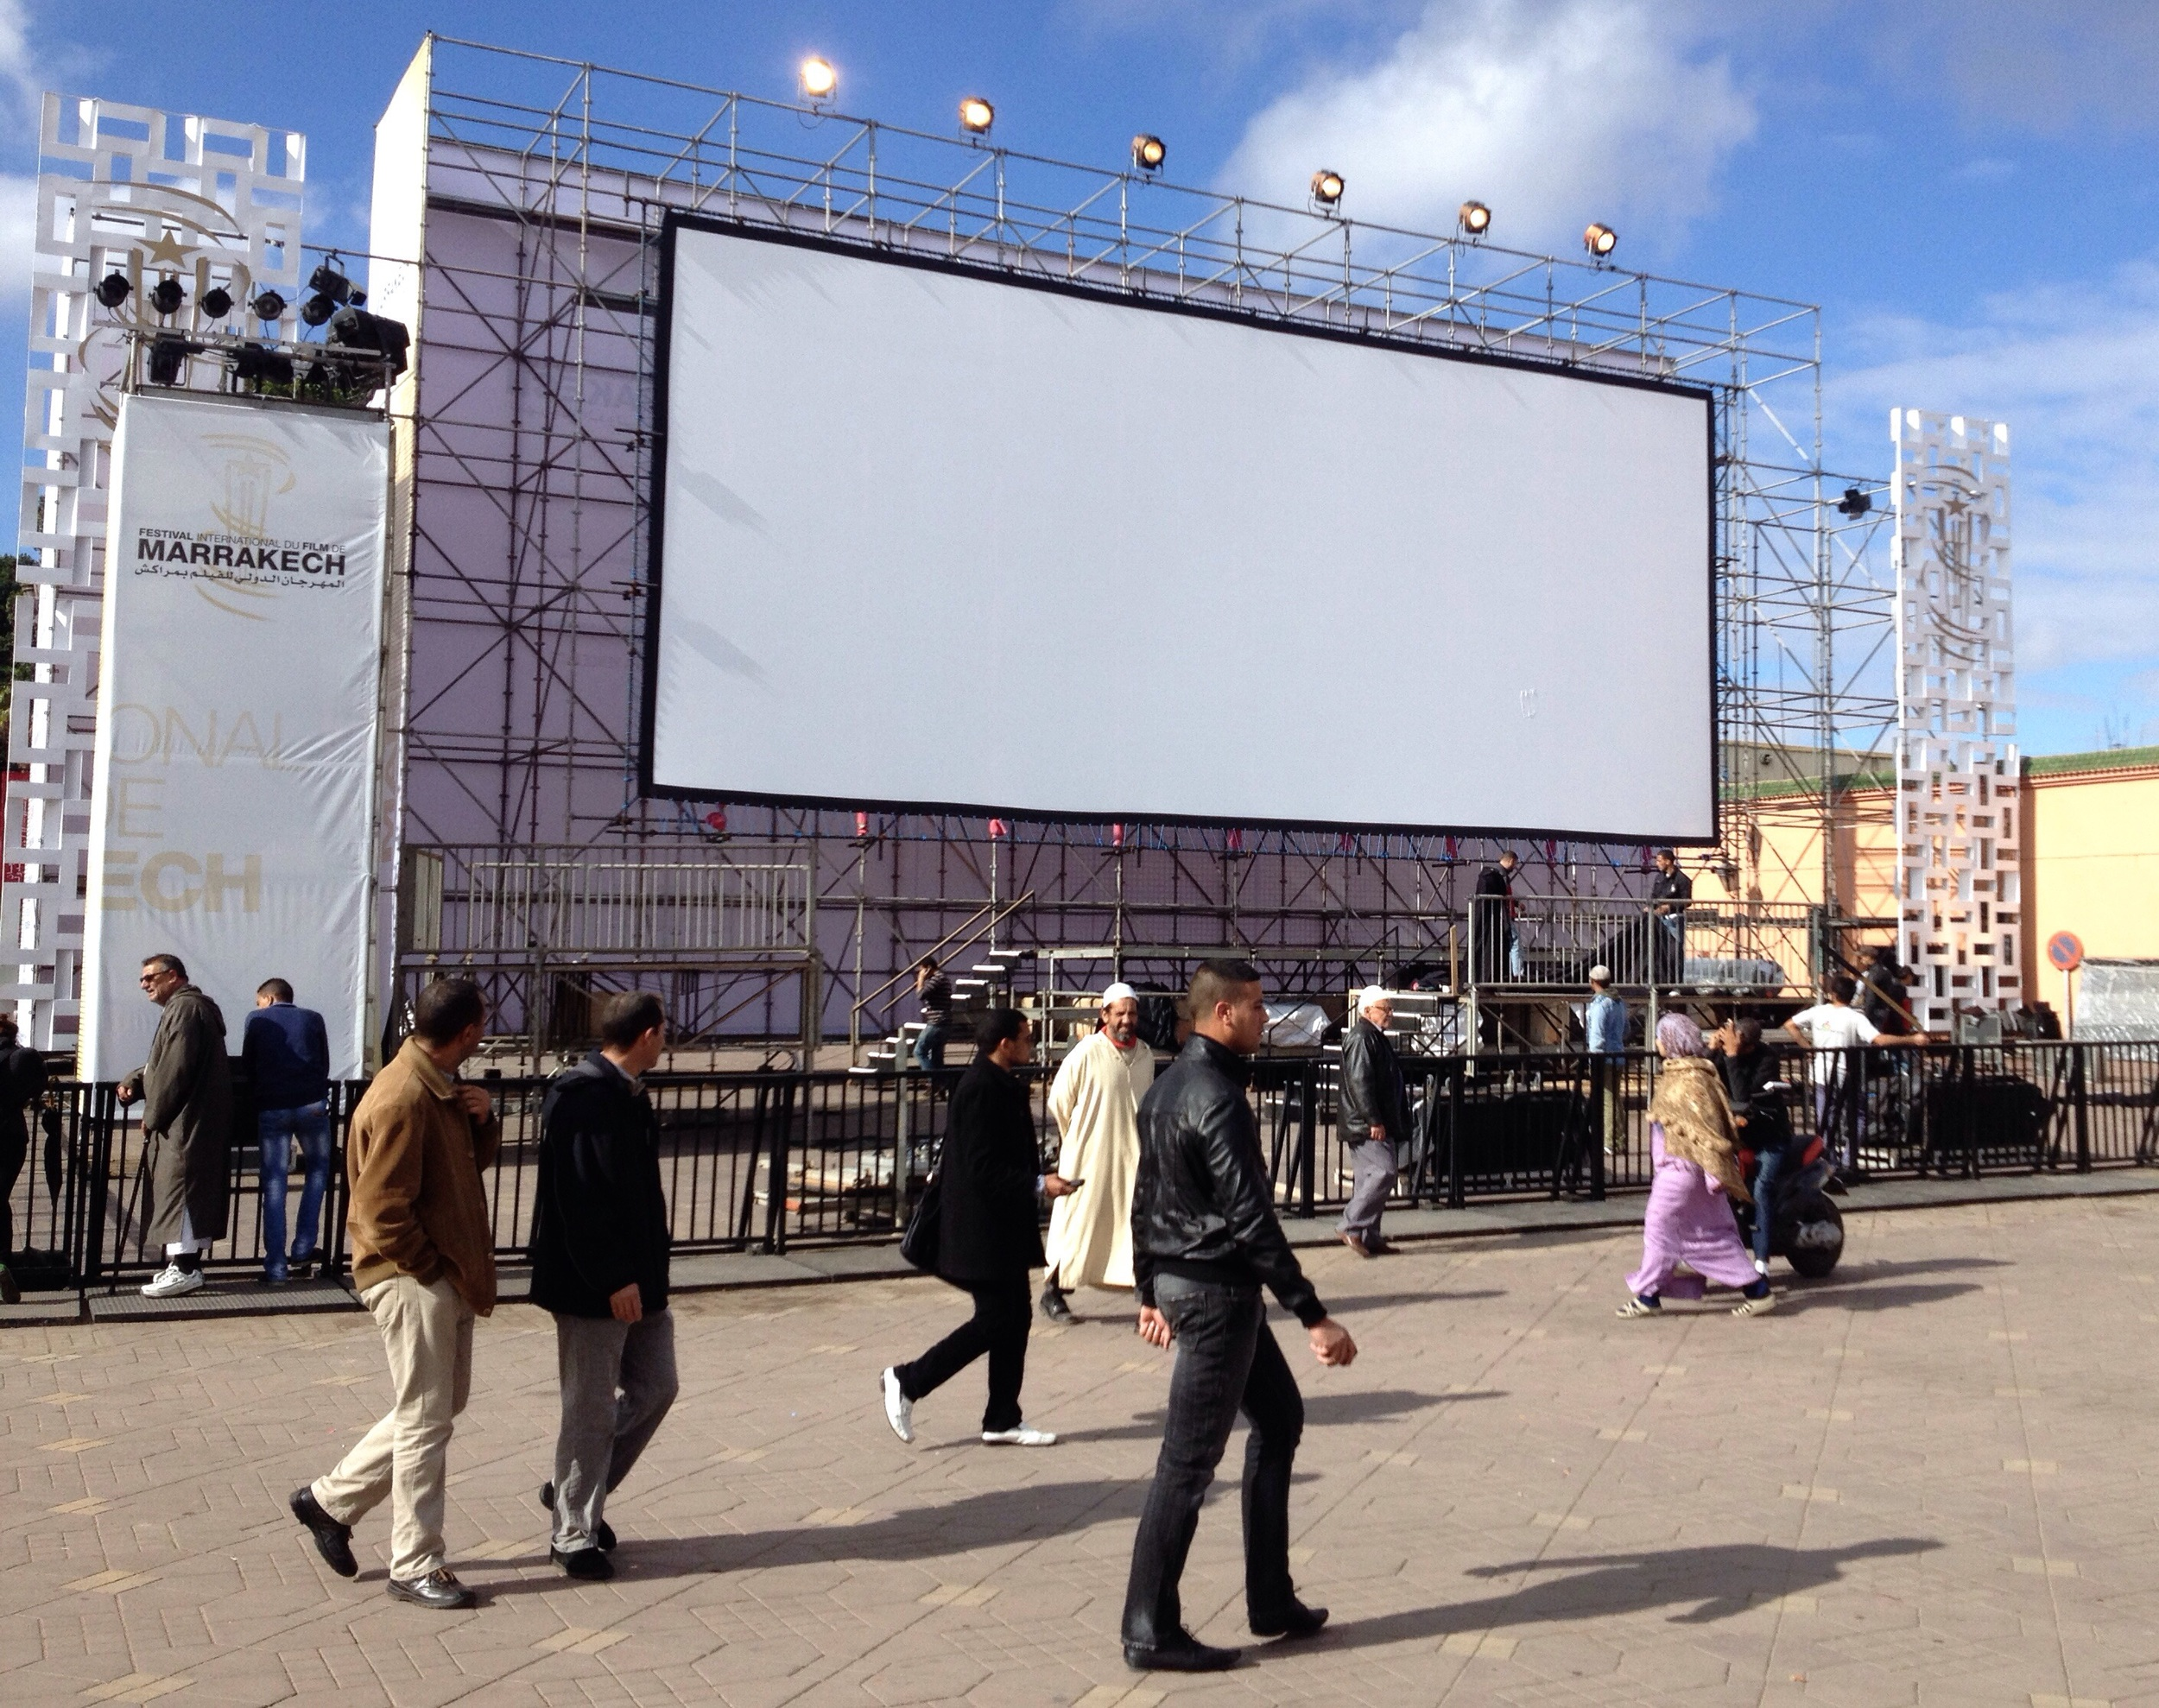 The main viewing screen in the square